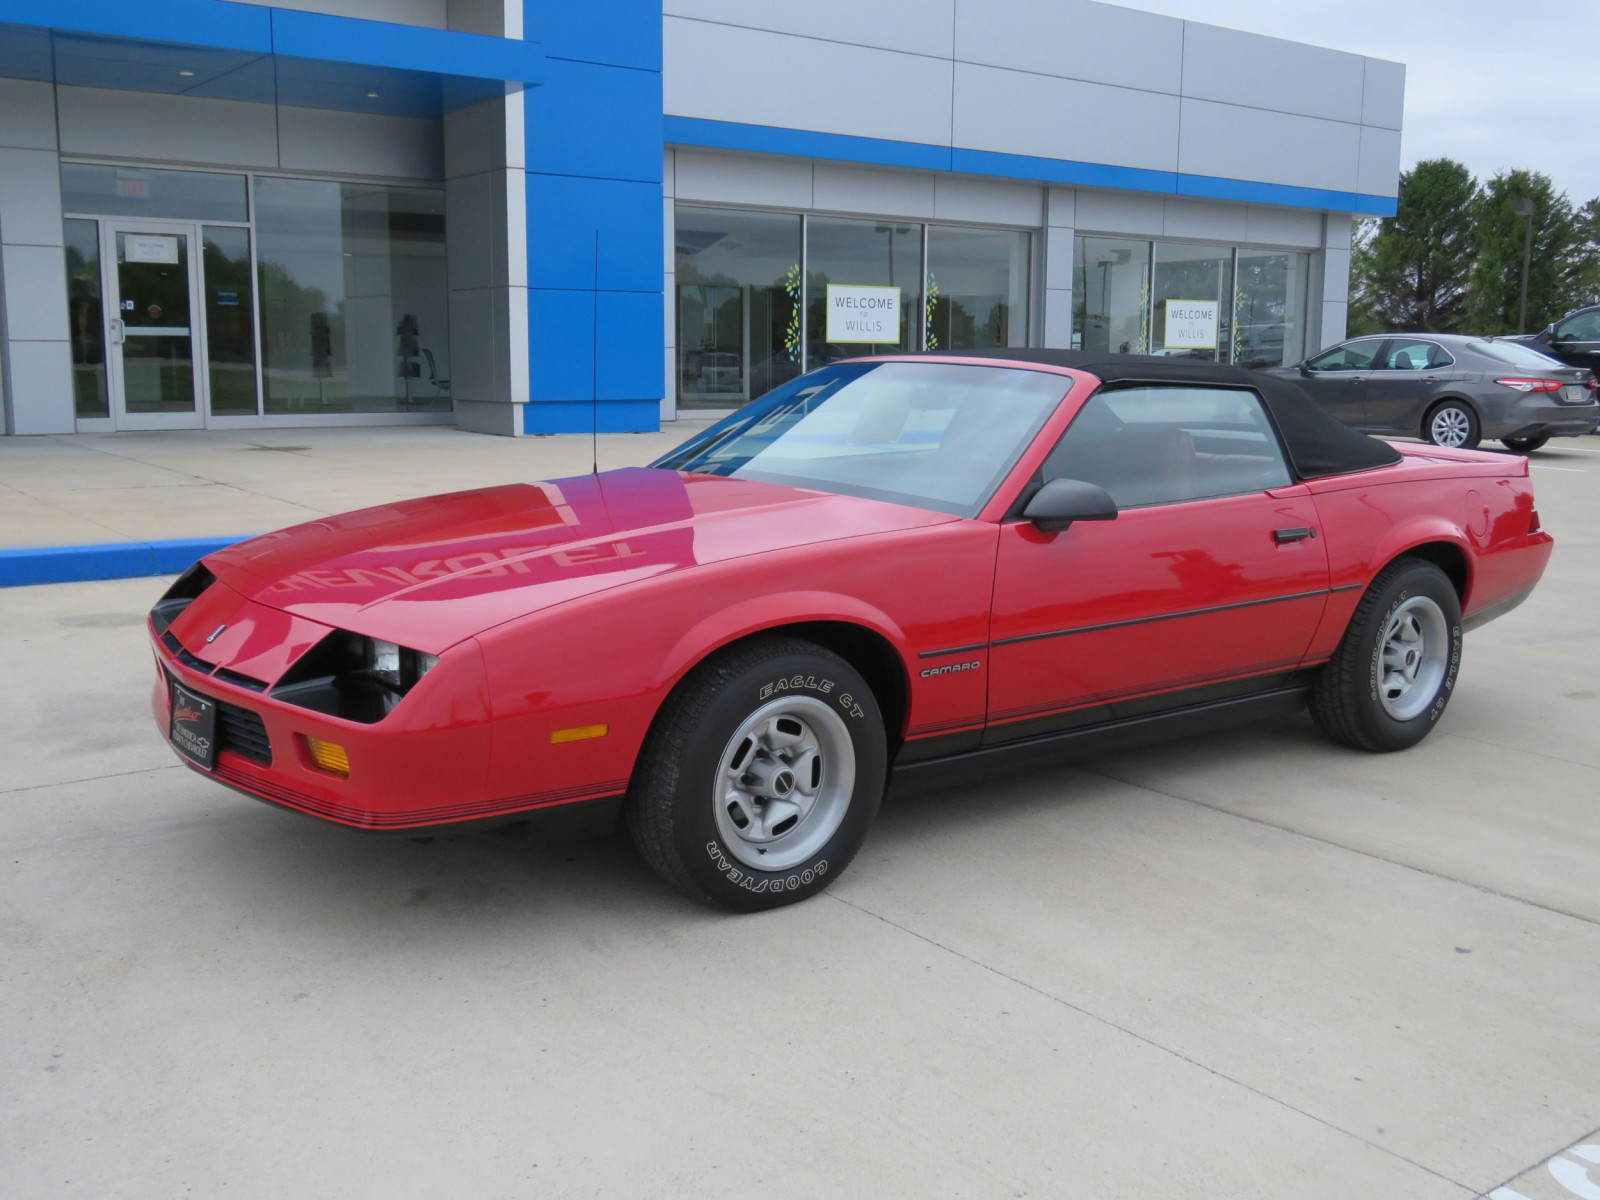 1987 Chevrolet Camaro RS Convertible - Image 2